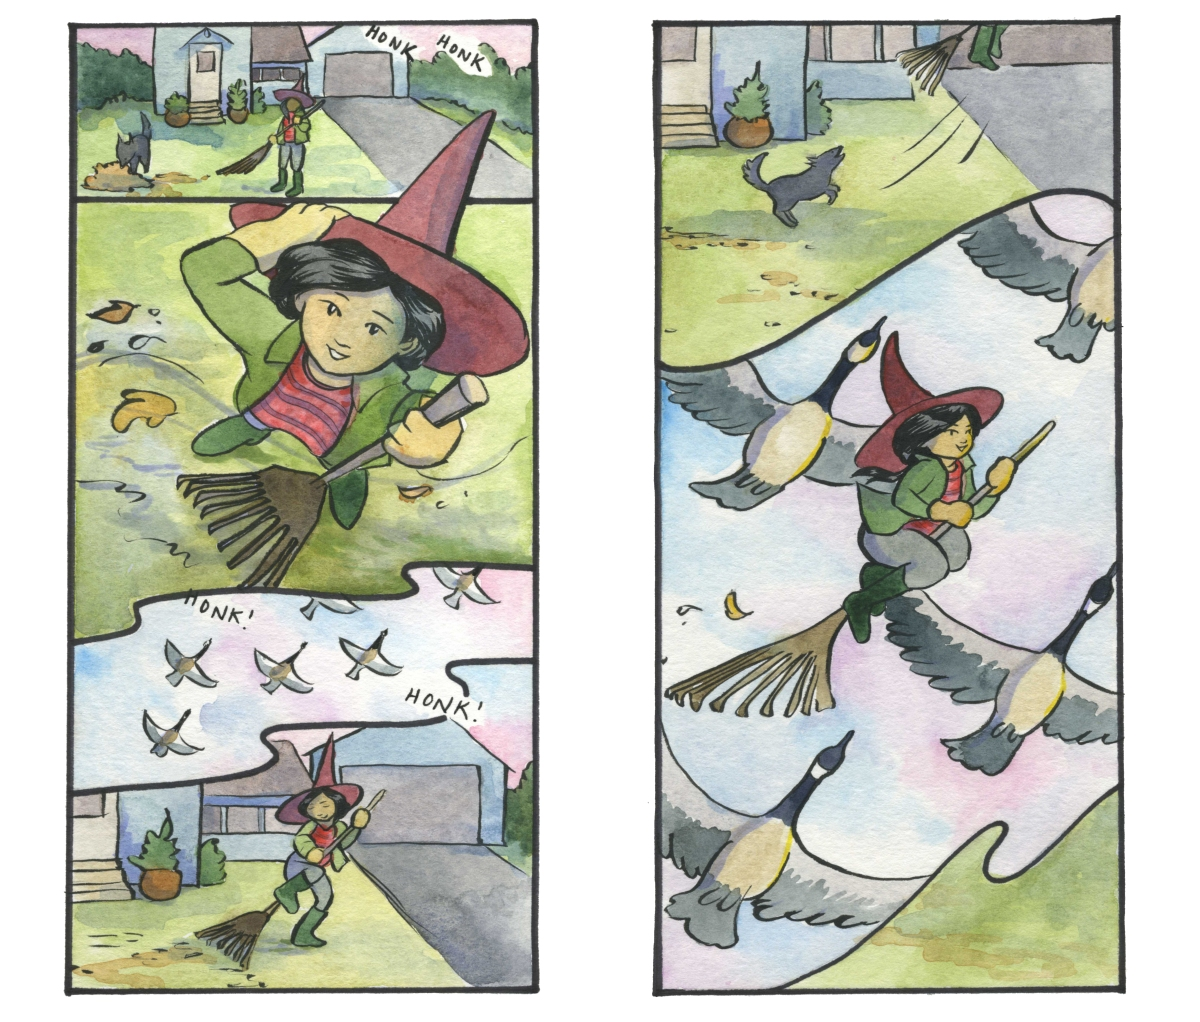 A witch rakes her lawn, sees geese flying overhead, and hops on her rake to join them Carmen Wood Illustration Minneapolis comic art graphic novel children's illustration fantasy art